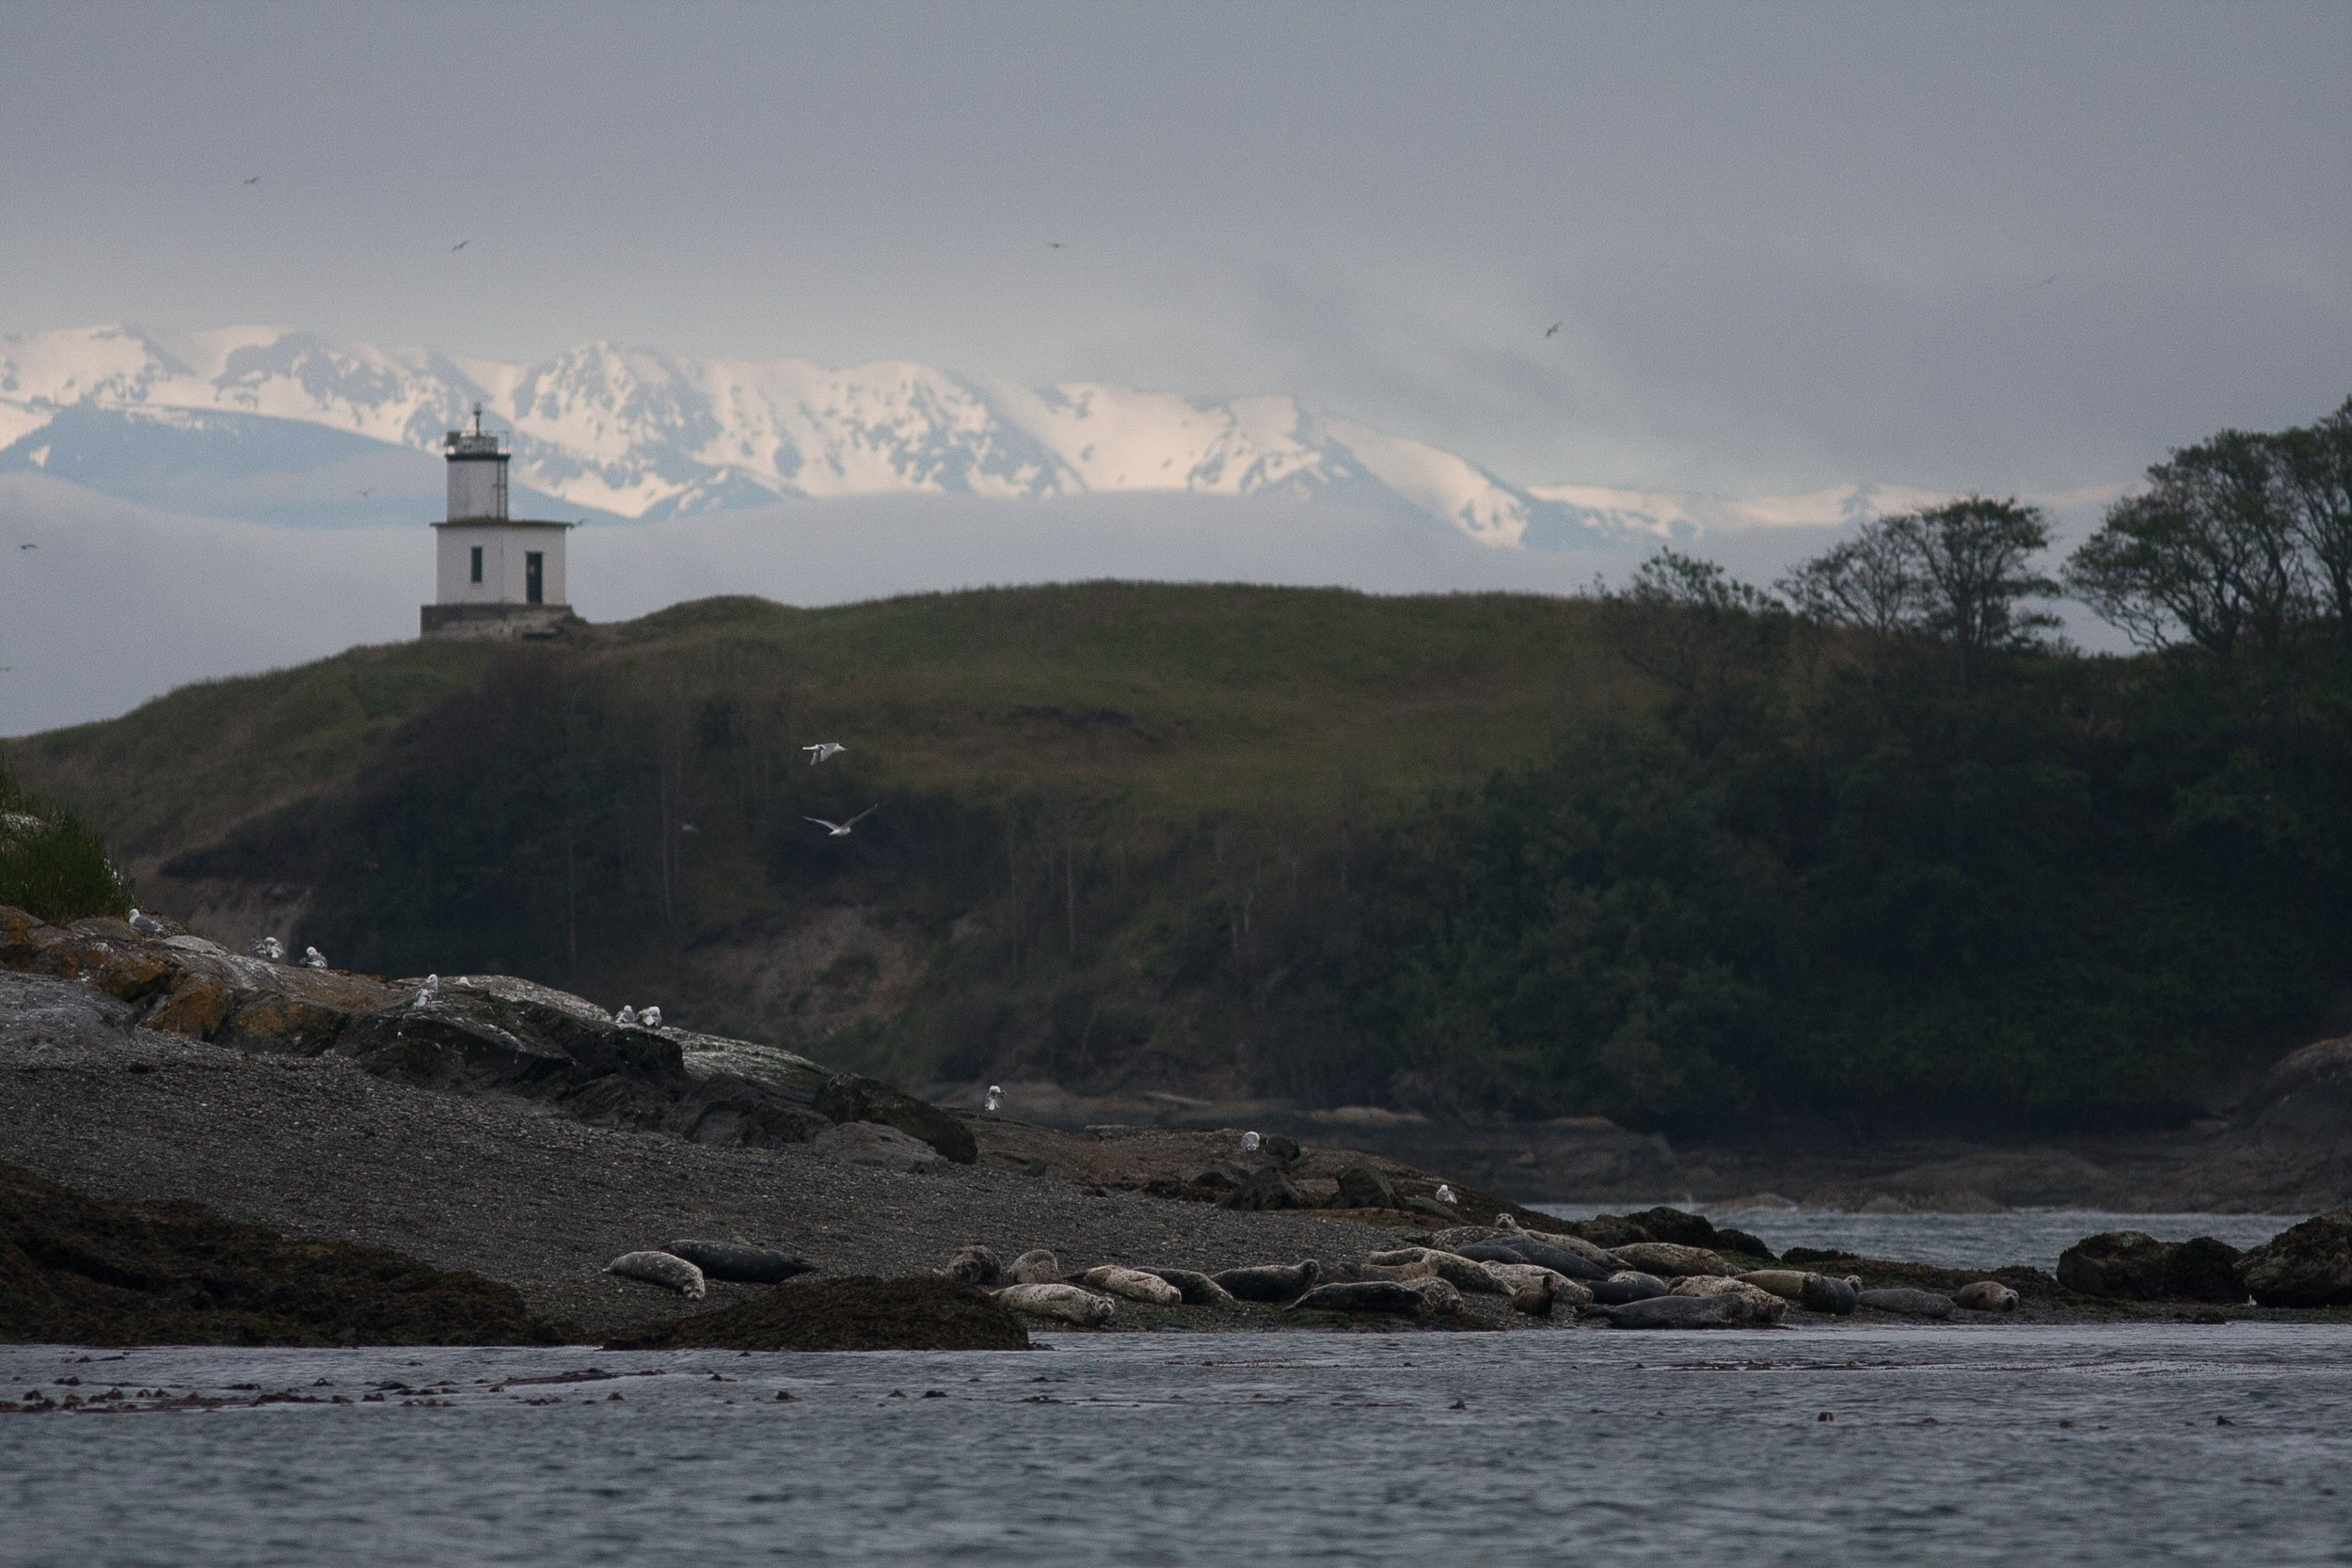 Harbor seals on Goose Island with The Olympic Mountains and Cattle Point lighthouse in the background